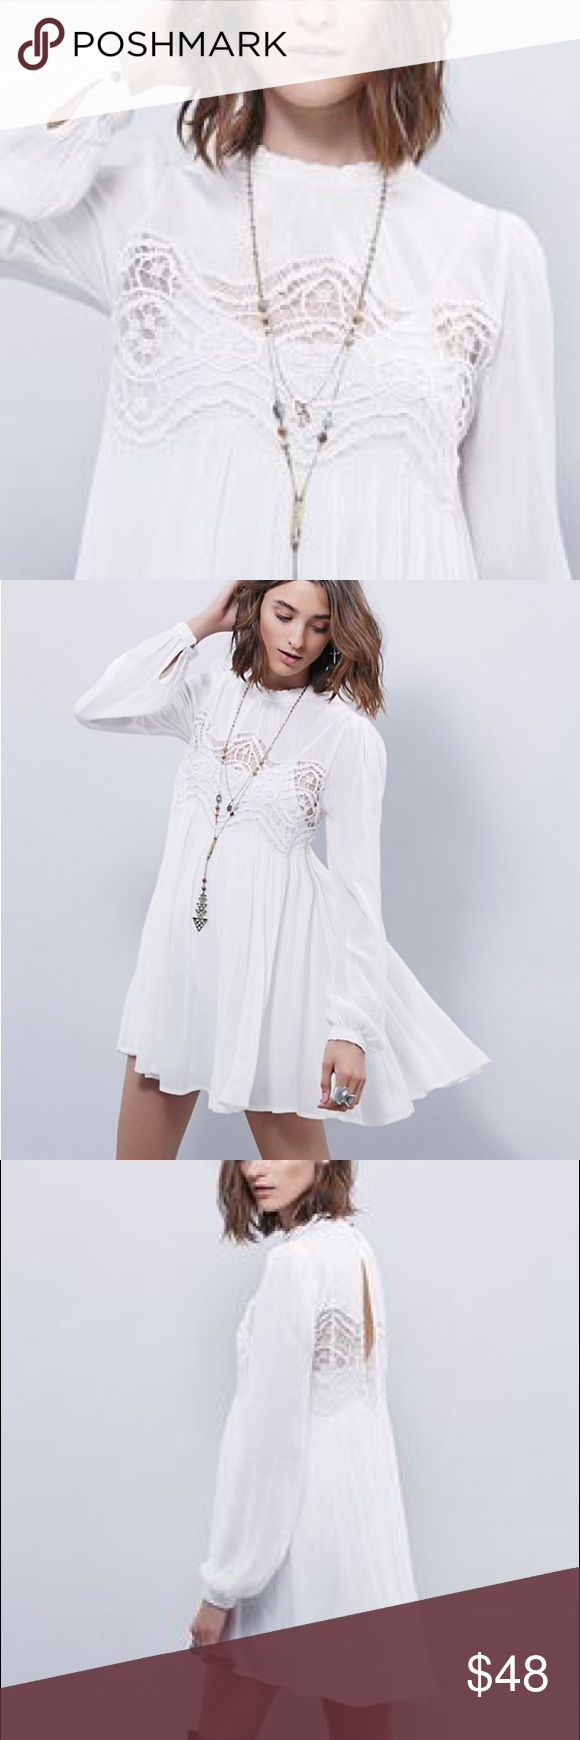 """Crepe Crochet Tunic DRESS Sweet Thing White NEW BRAND NEW!! Semi-sheer printed crinkly crepe babydoll tunic with lace trims at mock neck and cuffs. Sheer crochet lace contrast and large back cutout with button closure at nape.  S: Bust: 32.8""""/Length: 30.9"""" M: Bust: 33.8""""/Length: 31.4"""" L: Bust: 35.4""""/Length: 31.8"""" XL: Bust: 37.1""""/Length: 32.4""""  🌟🌟Item is Brand New, direct from the Manufacturer, & Sealed in Pkg. 🌟🌟 austin gal Dresses"""